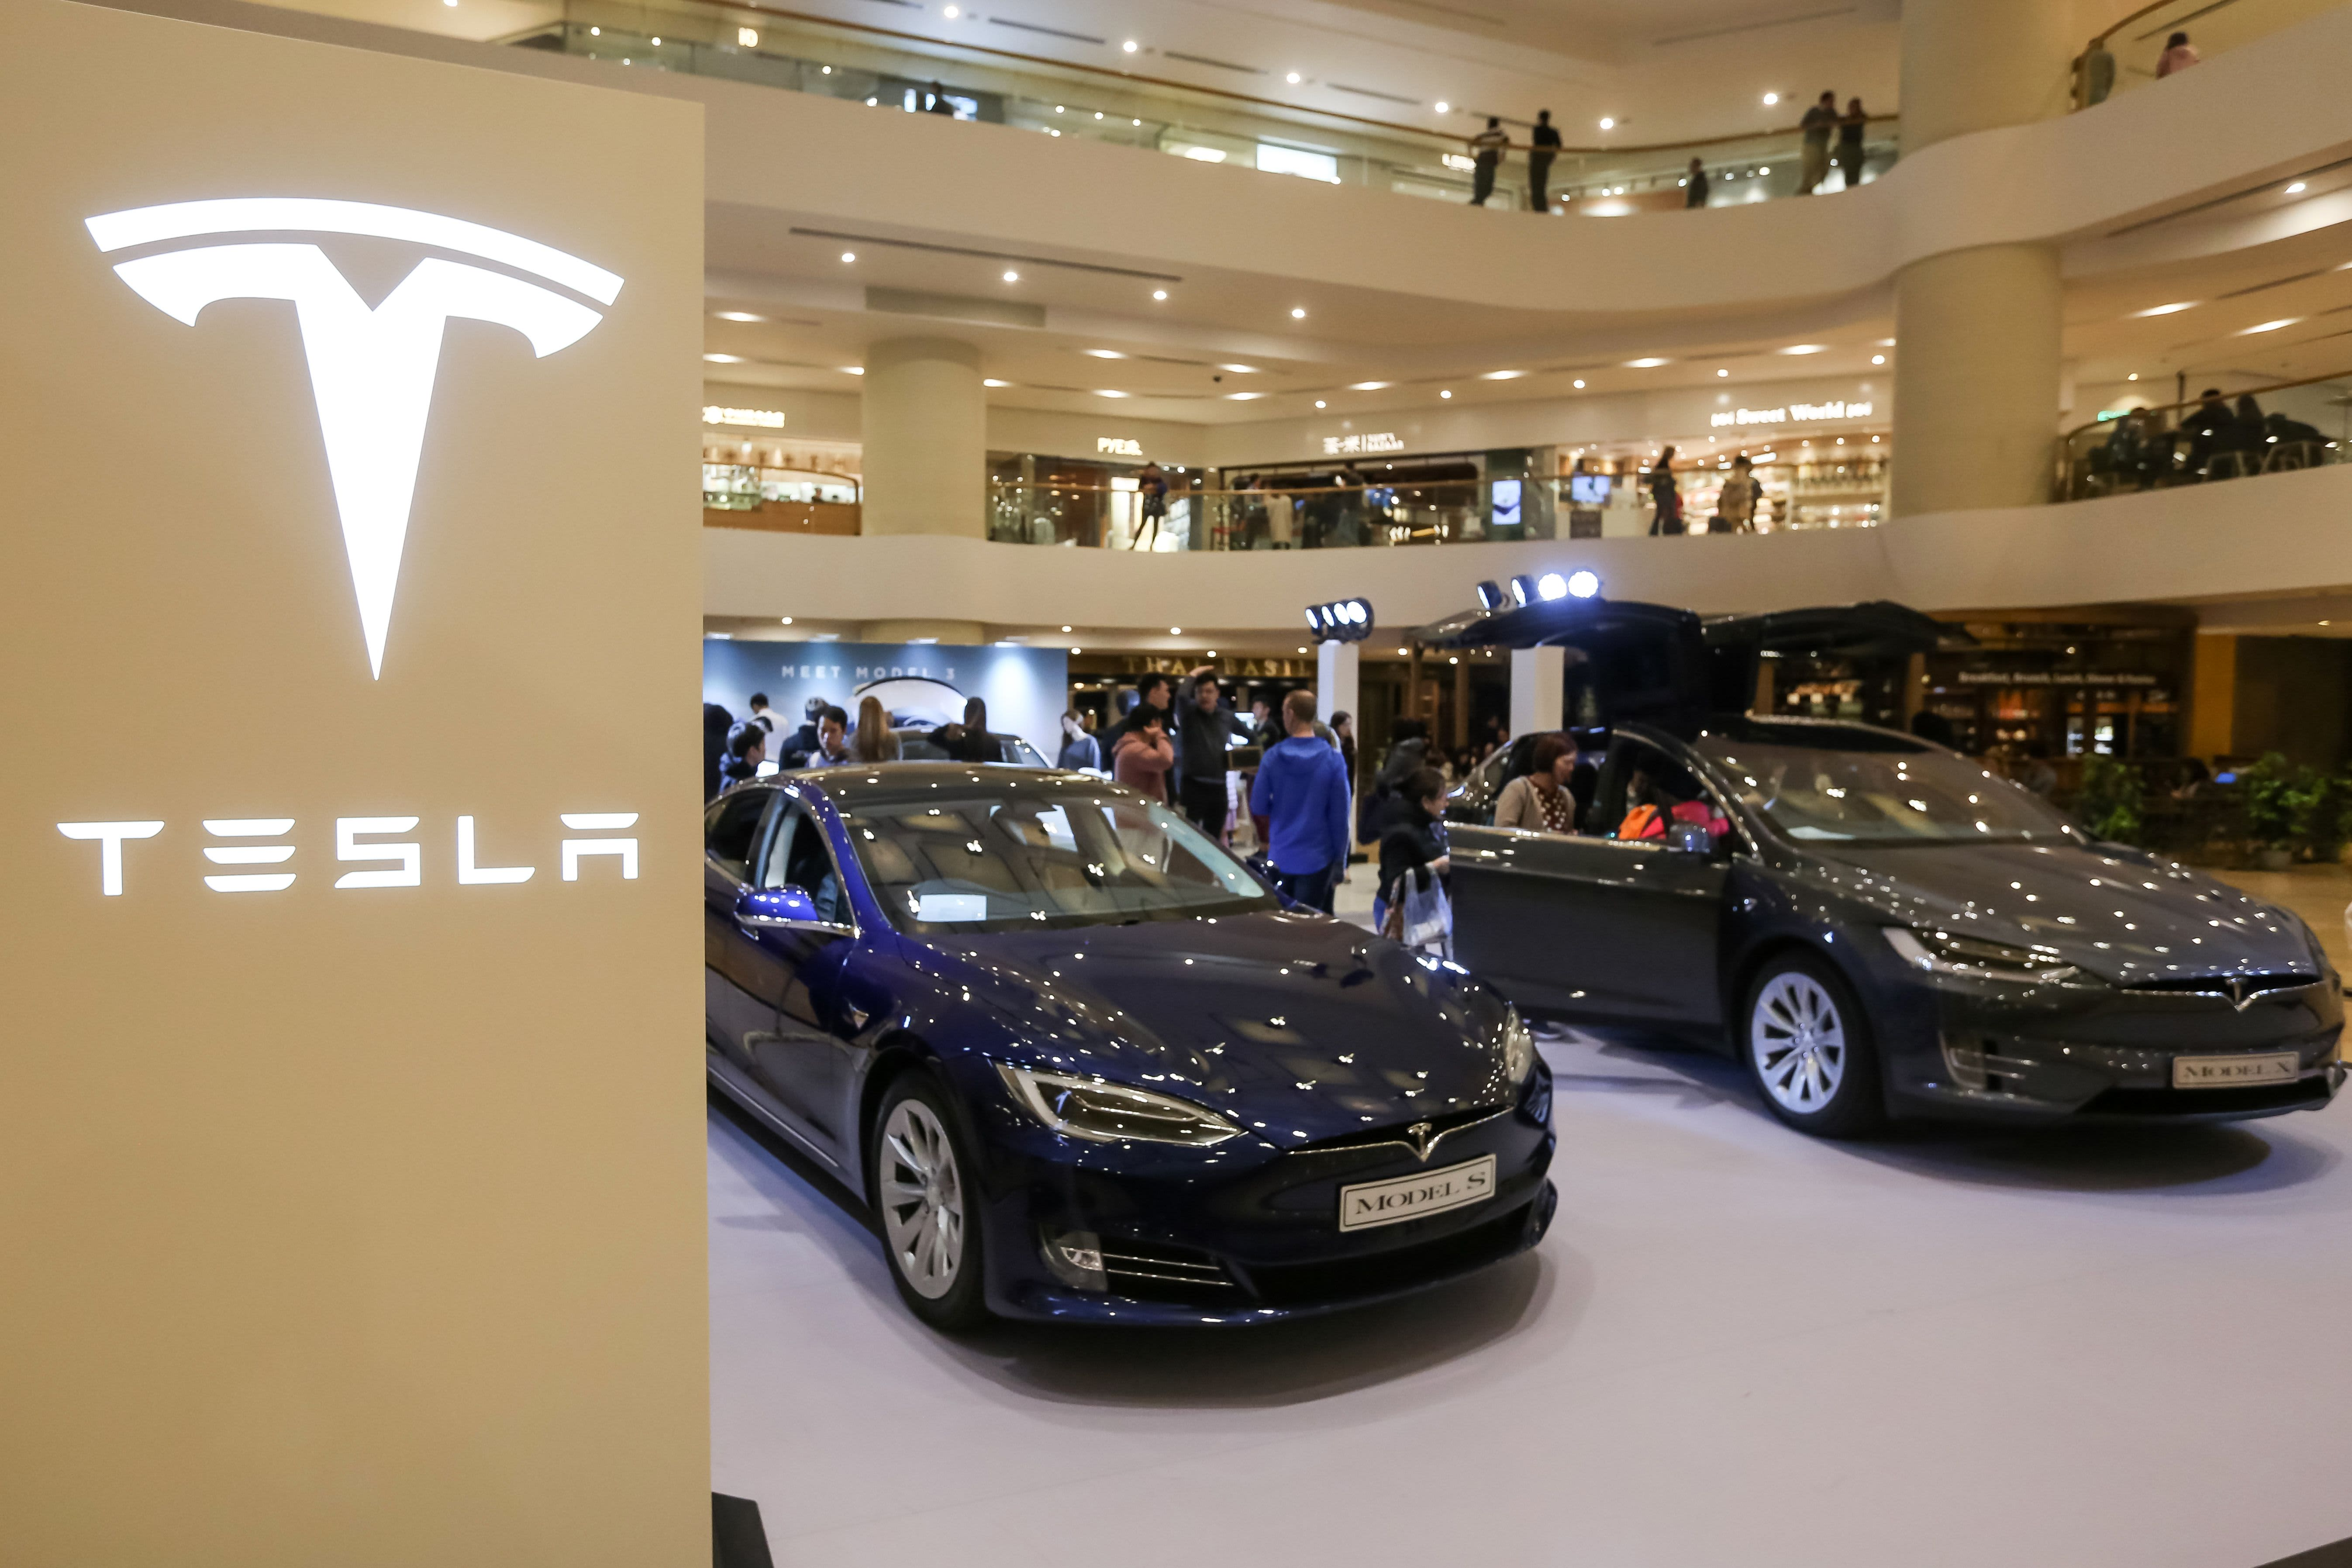 A Tesla Model S (L) and Model X are displayed at a shopping mall in Hong Kong on March 10, 2019.